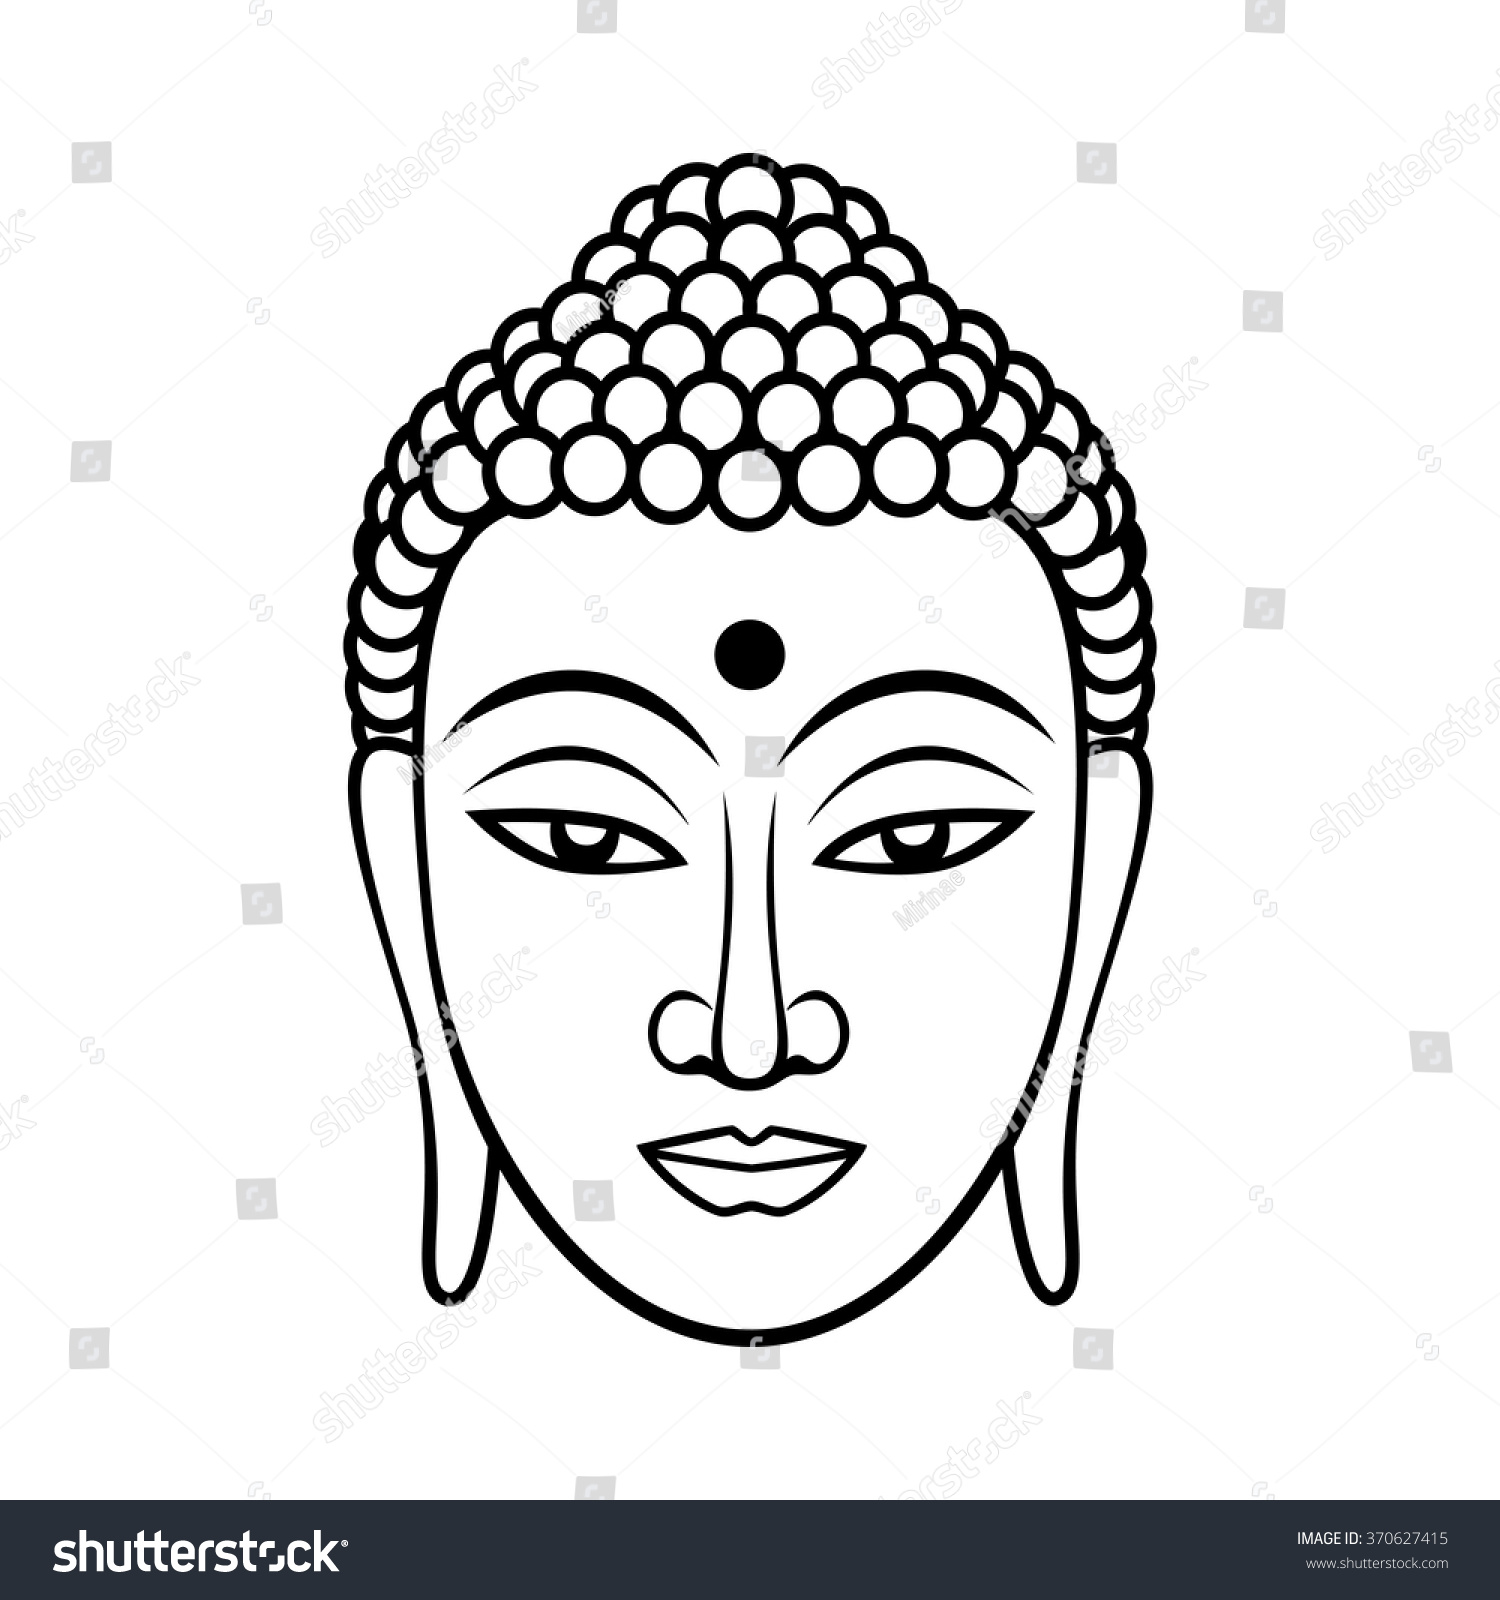 Buddha Face Line Drawing : Buddha face black line illustration on vectores en stock